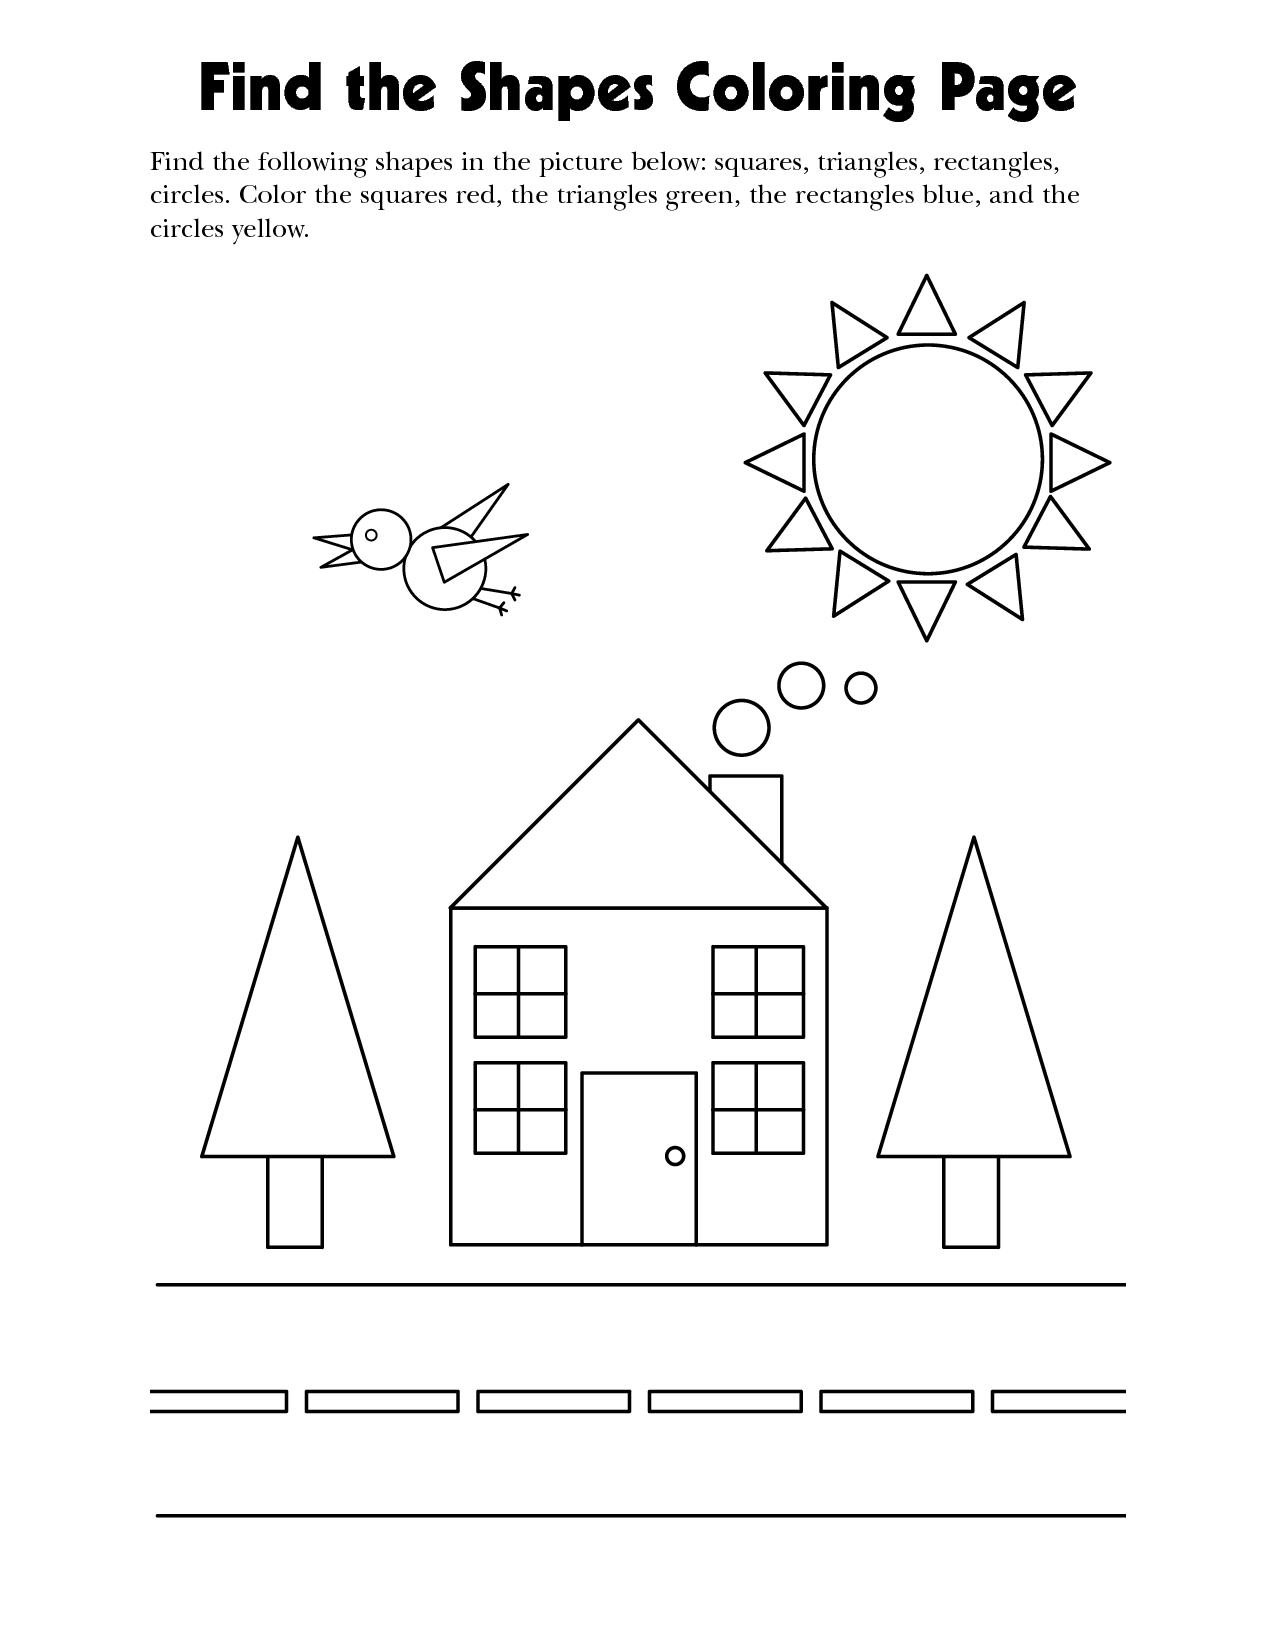 SHAPES COLORING PAGES | Coloring Pages Printable | PreK Math ...